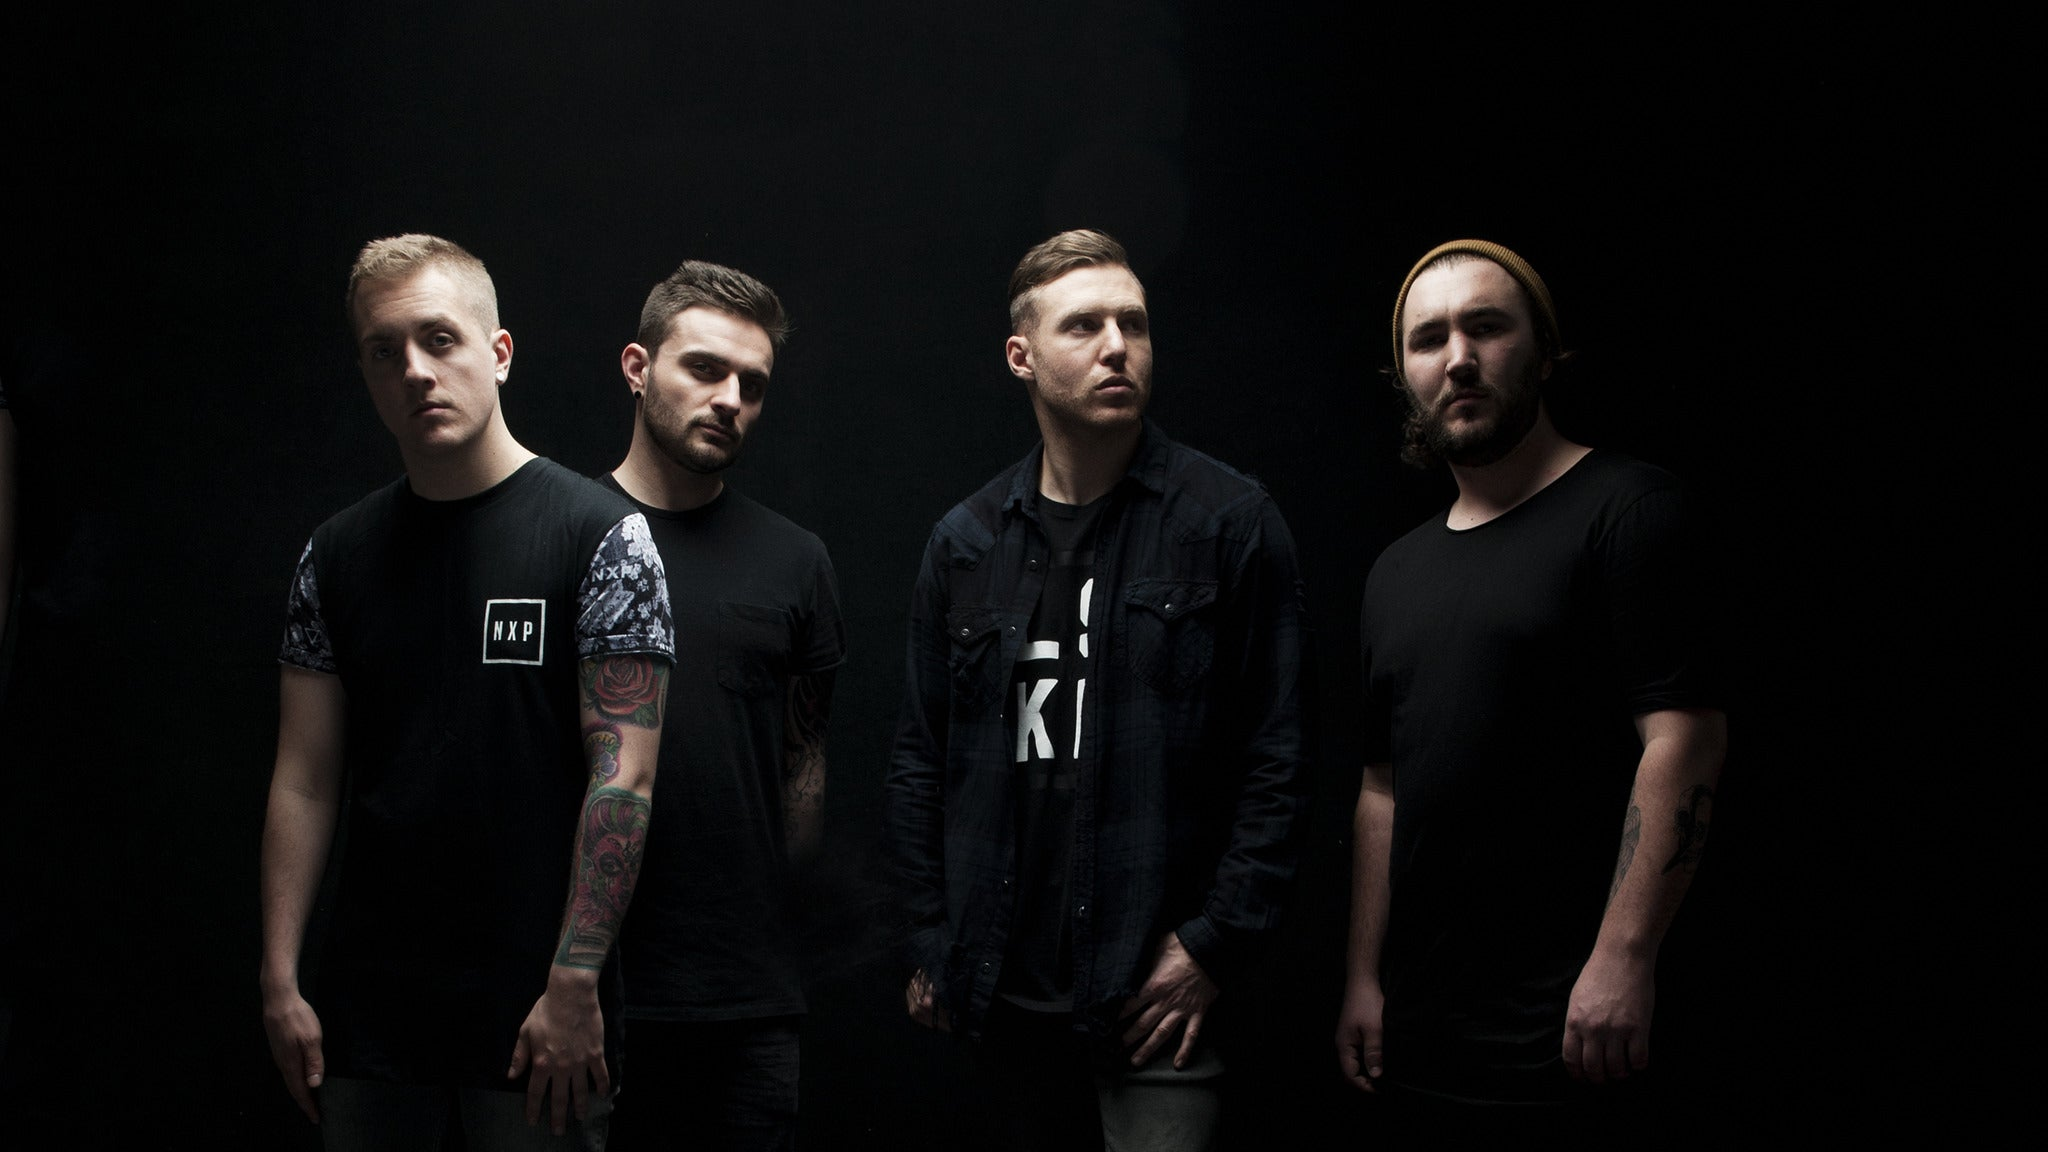 I Prevail at Cathedral Theatre at the Masonic Temple Detroit - Detroit, MI 48201